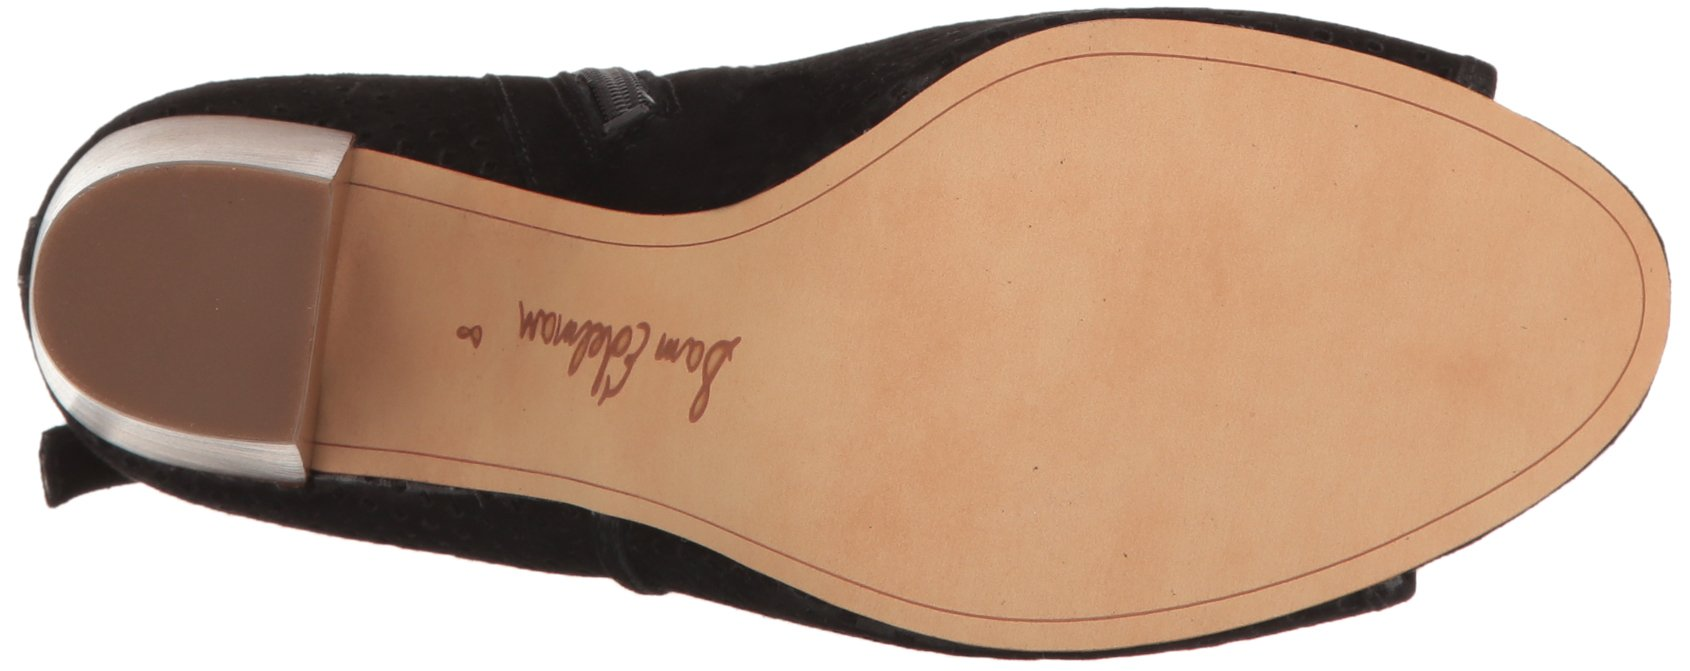 Sam Edelman Women's Ellery, Black, 8.5 M US by Sam Edelman (Image #3)